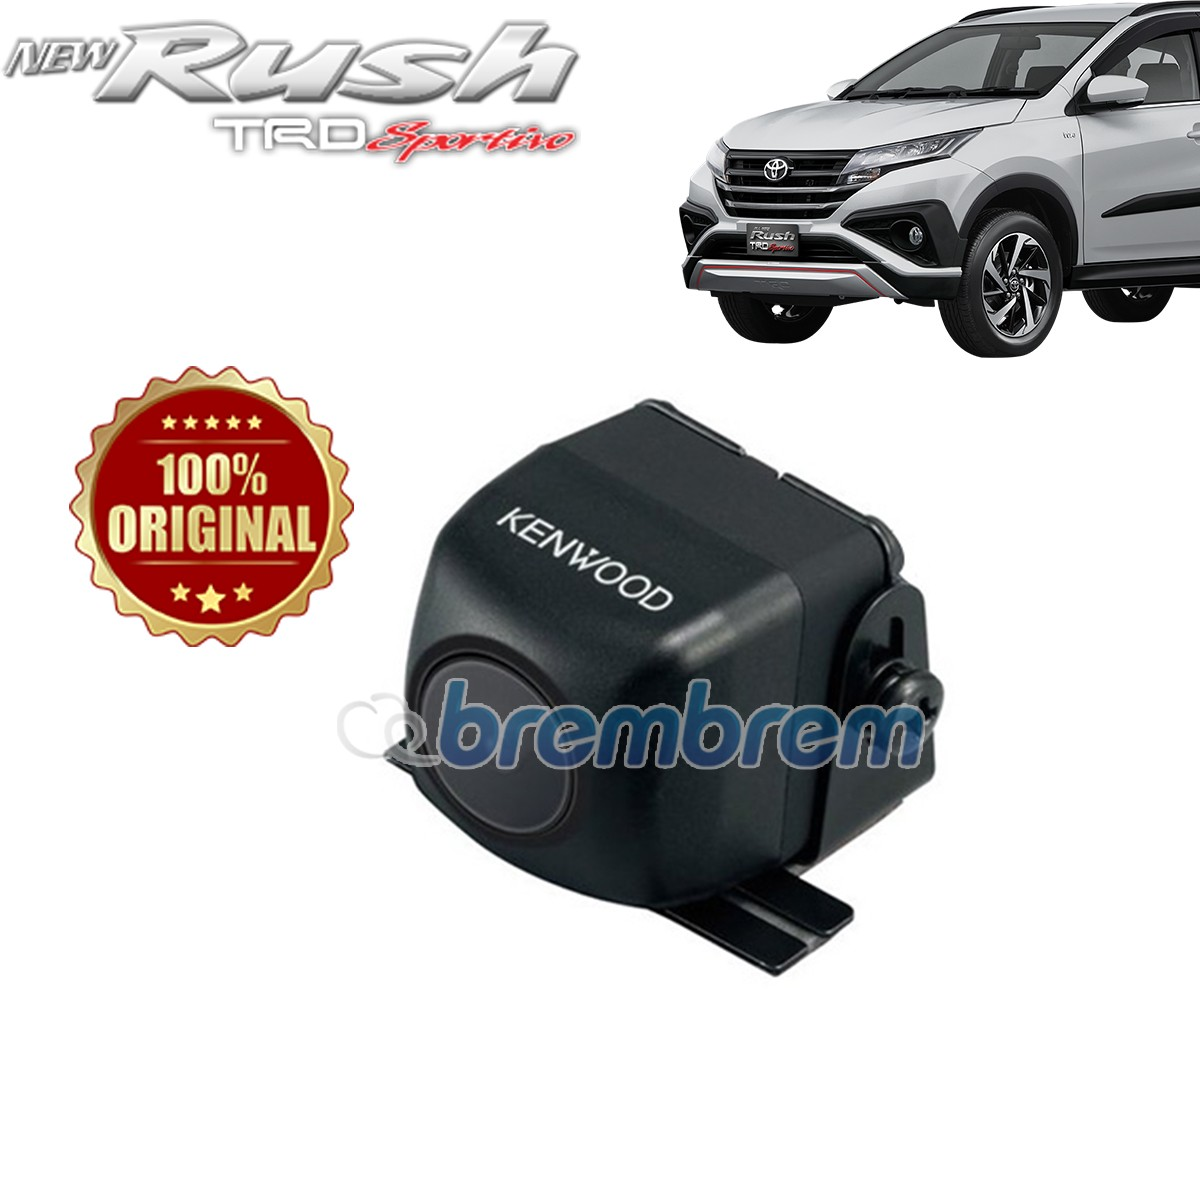 KENWOOD CMOS 130 - KAMERA MUNDUR TOYOTA ALL NEW RUSH